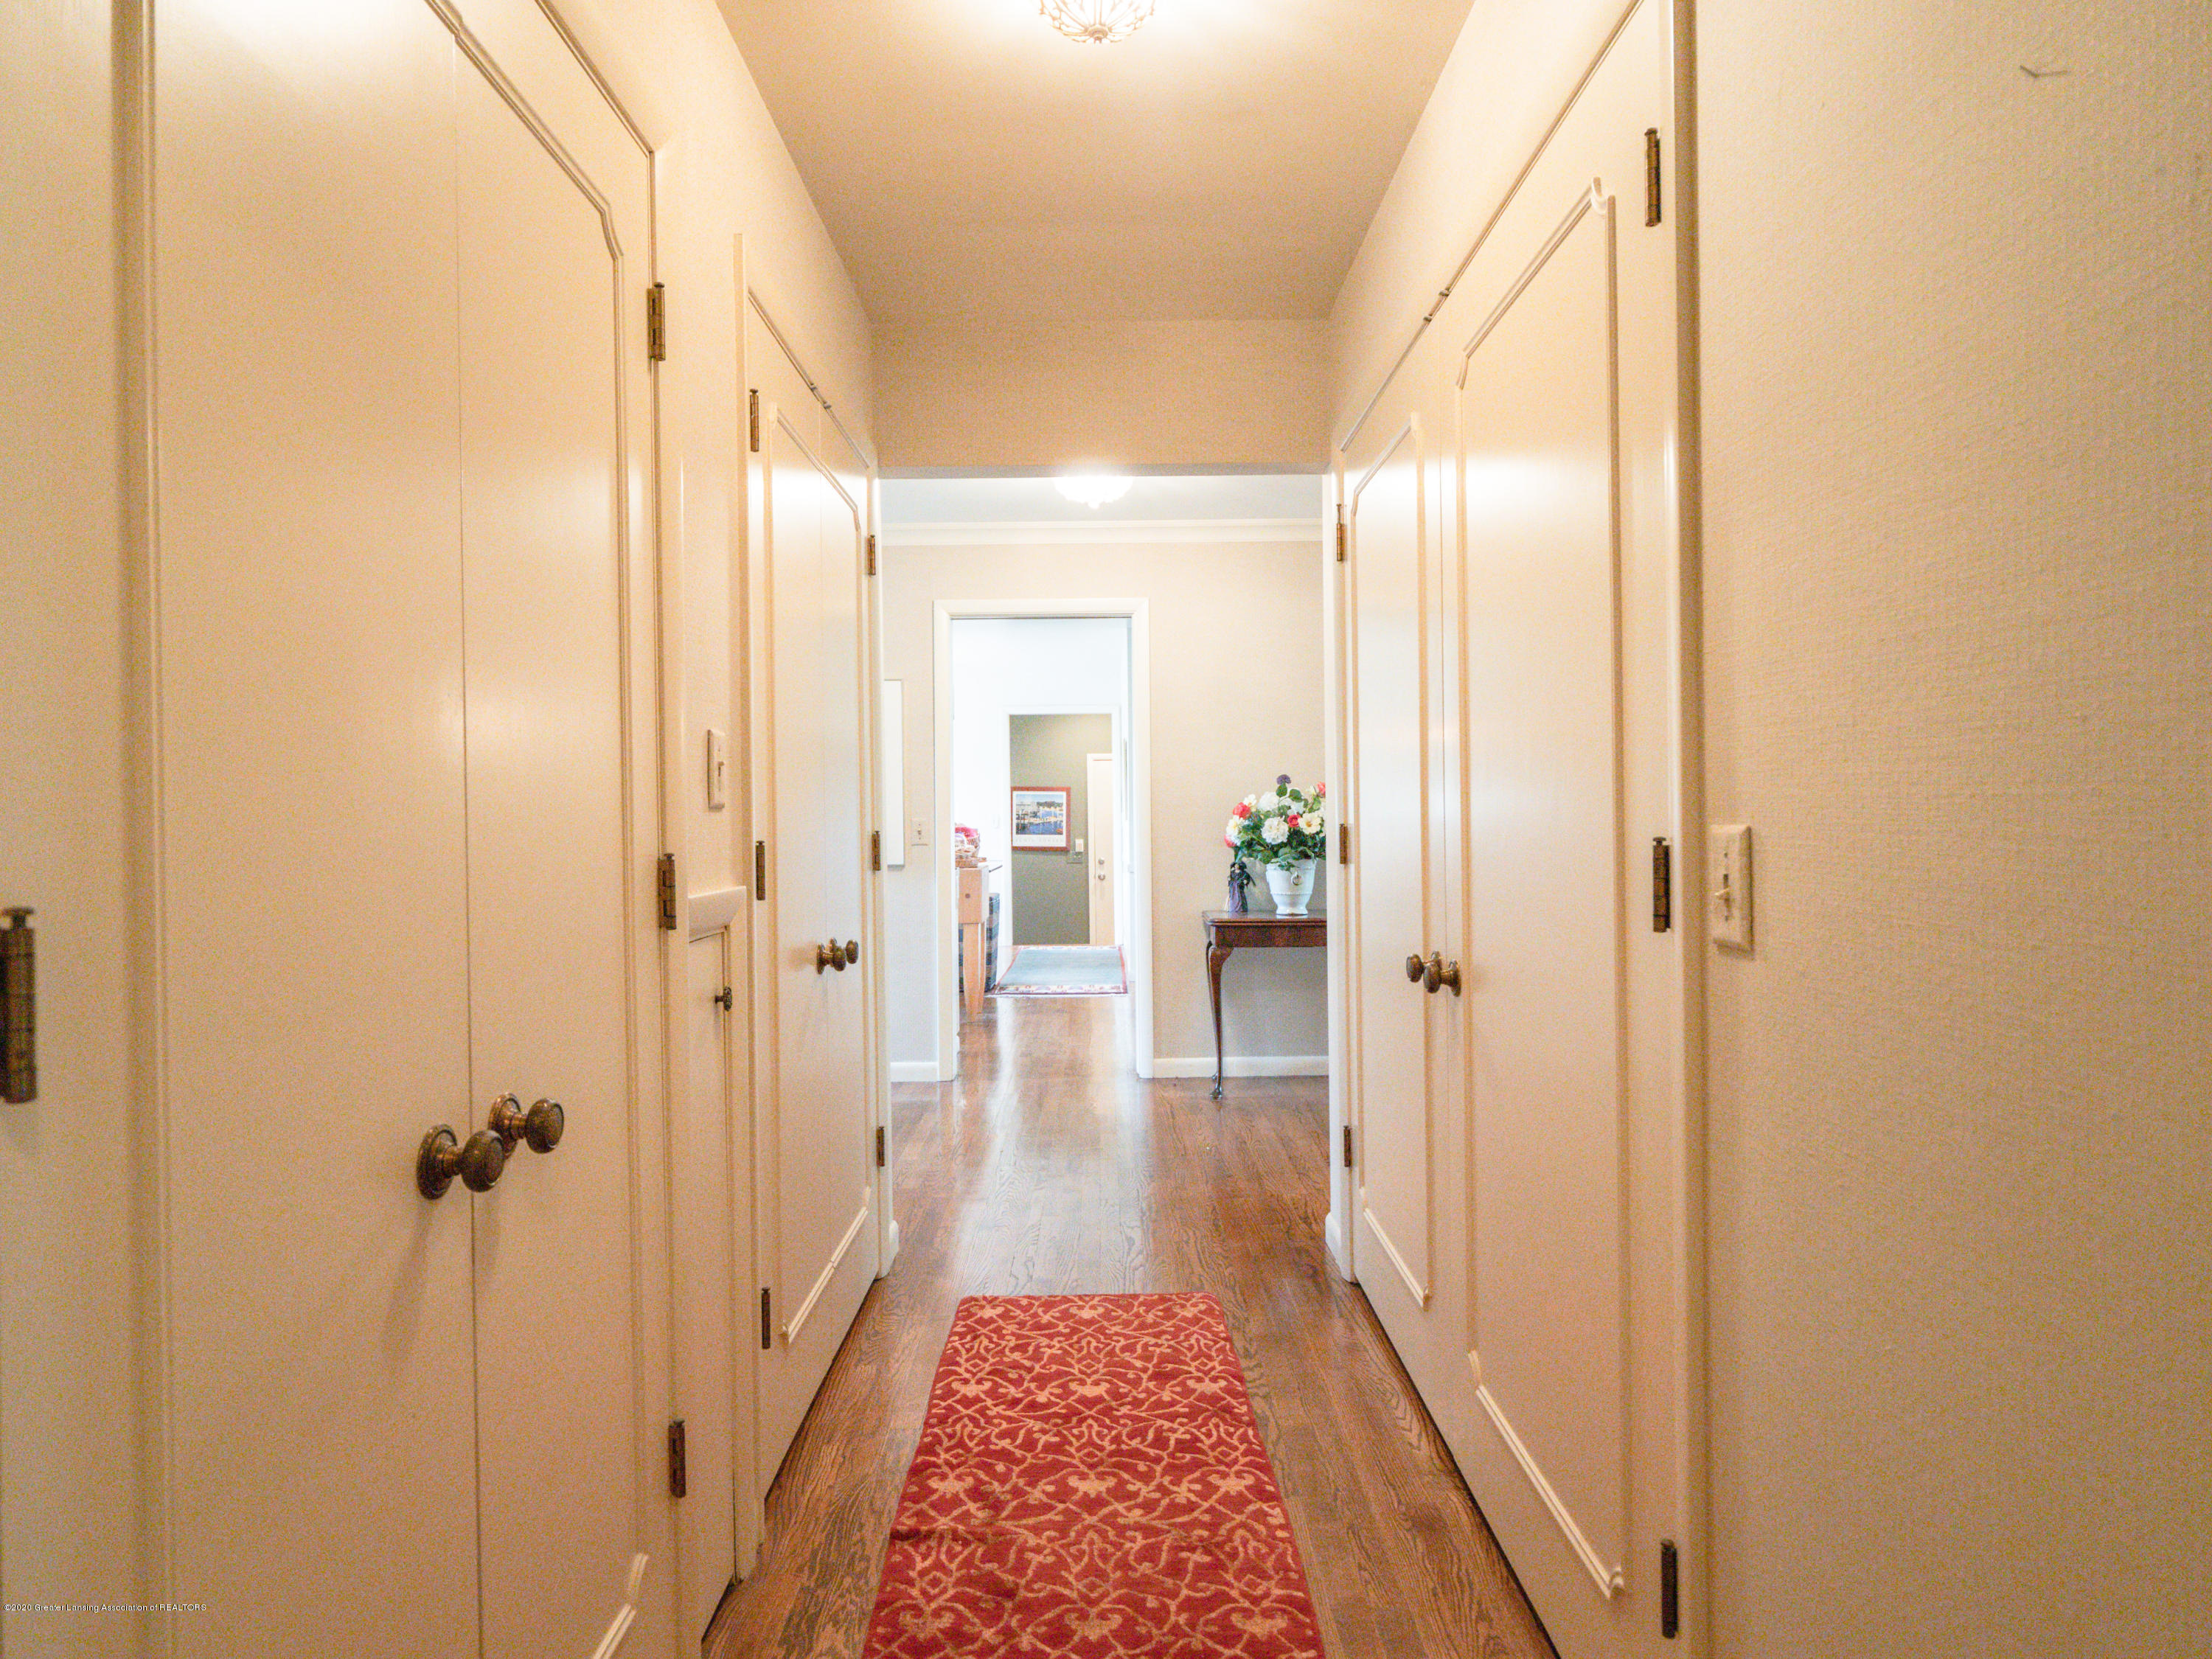 553 Southlawn Ave - 553_Southlawn_Ave-35 - 30